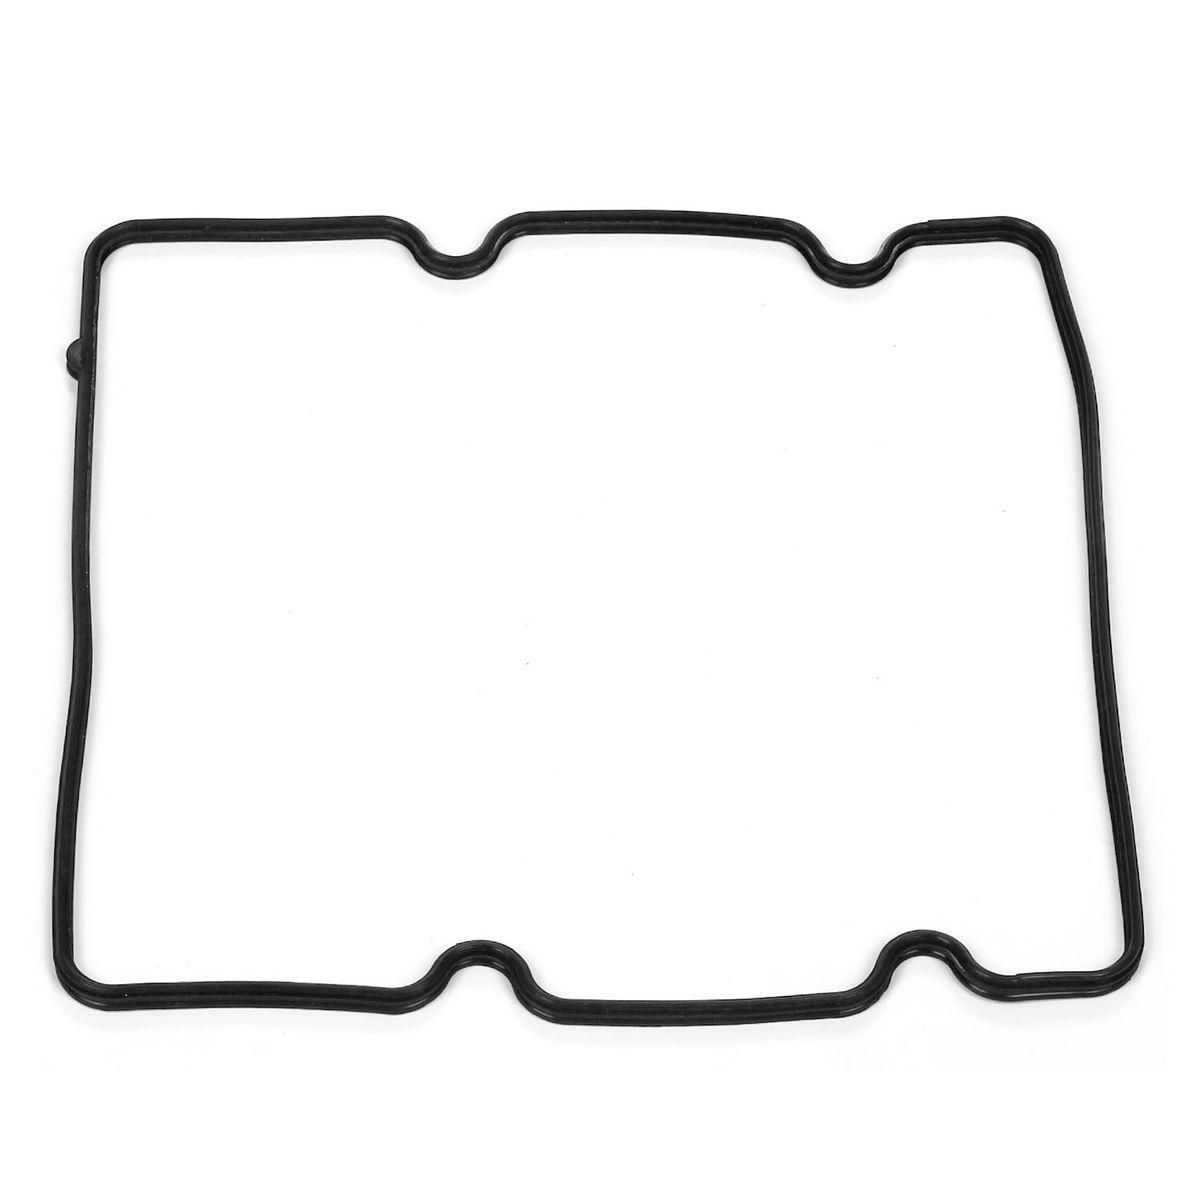 Oil Pump Cover Gasket Fits 2003-2010 Ford F250 F350 6.0